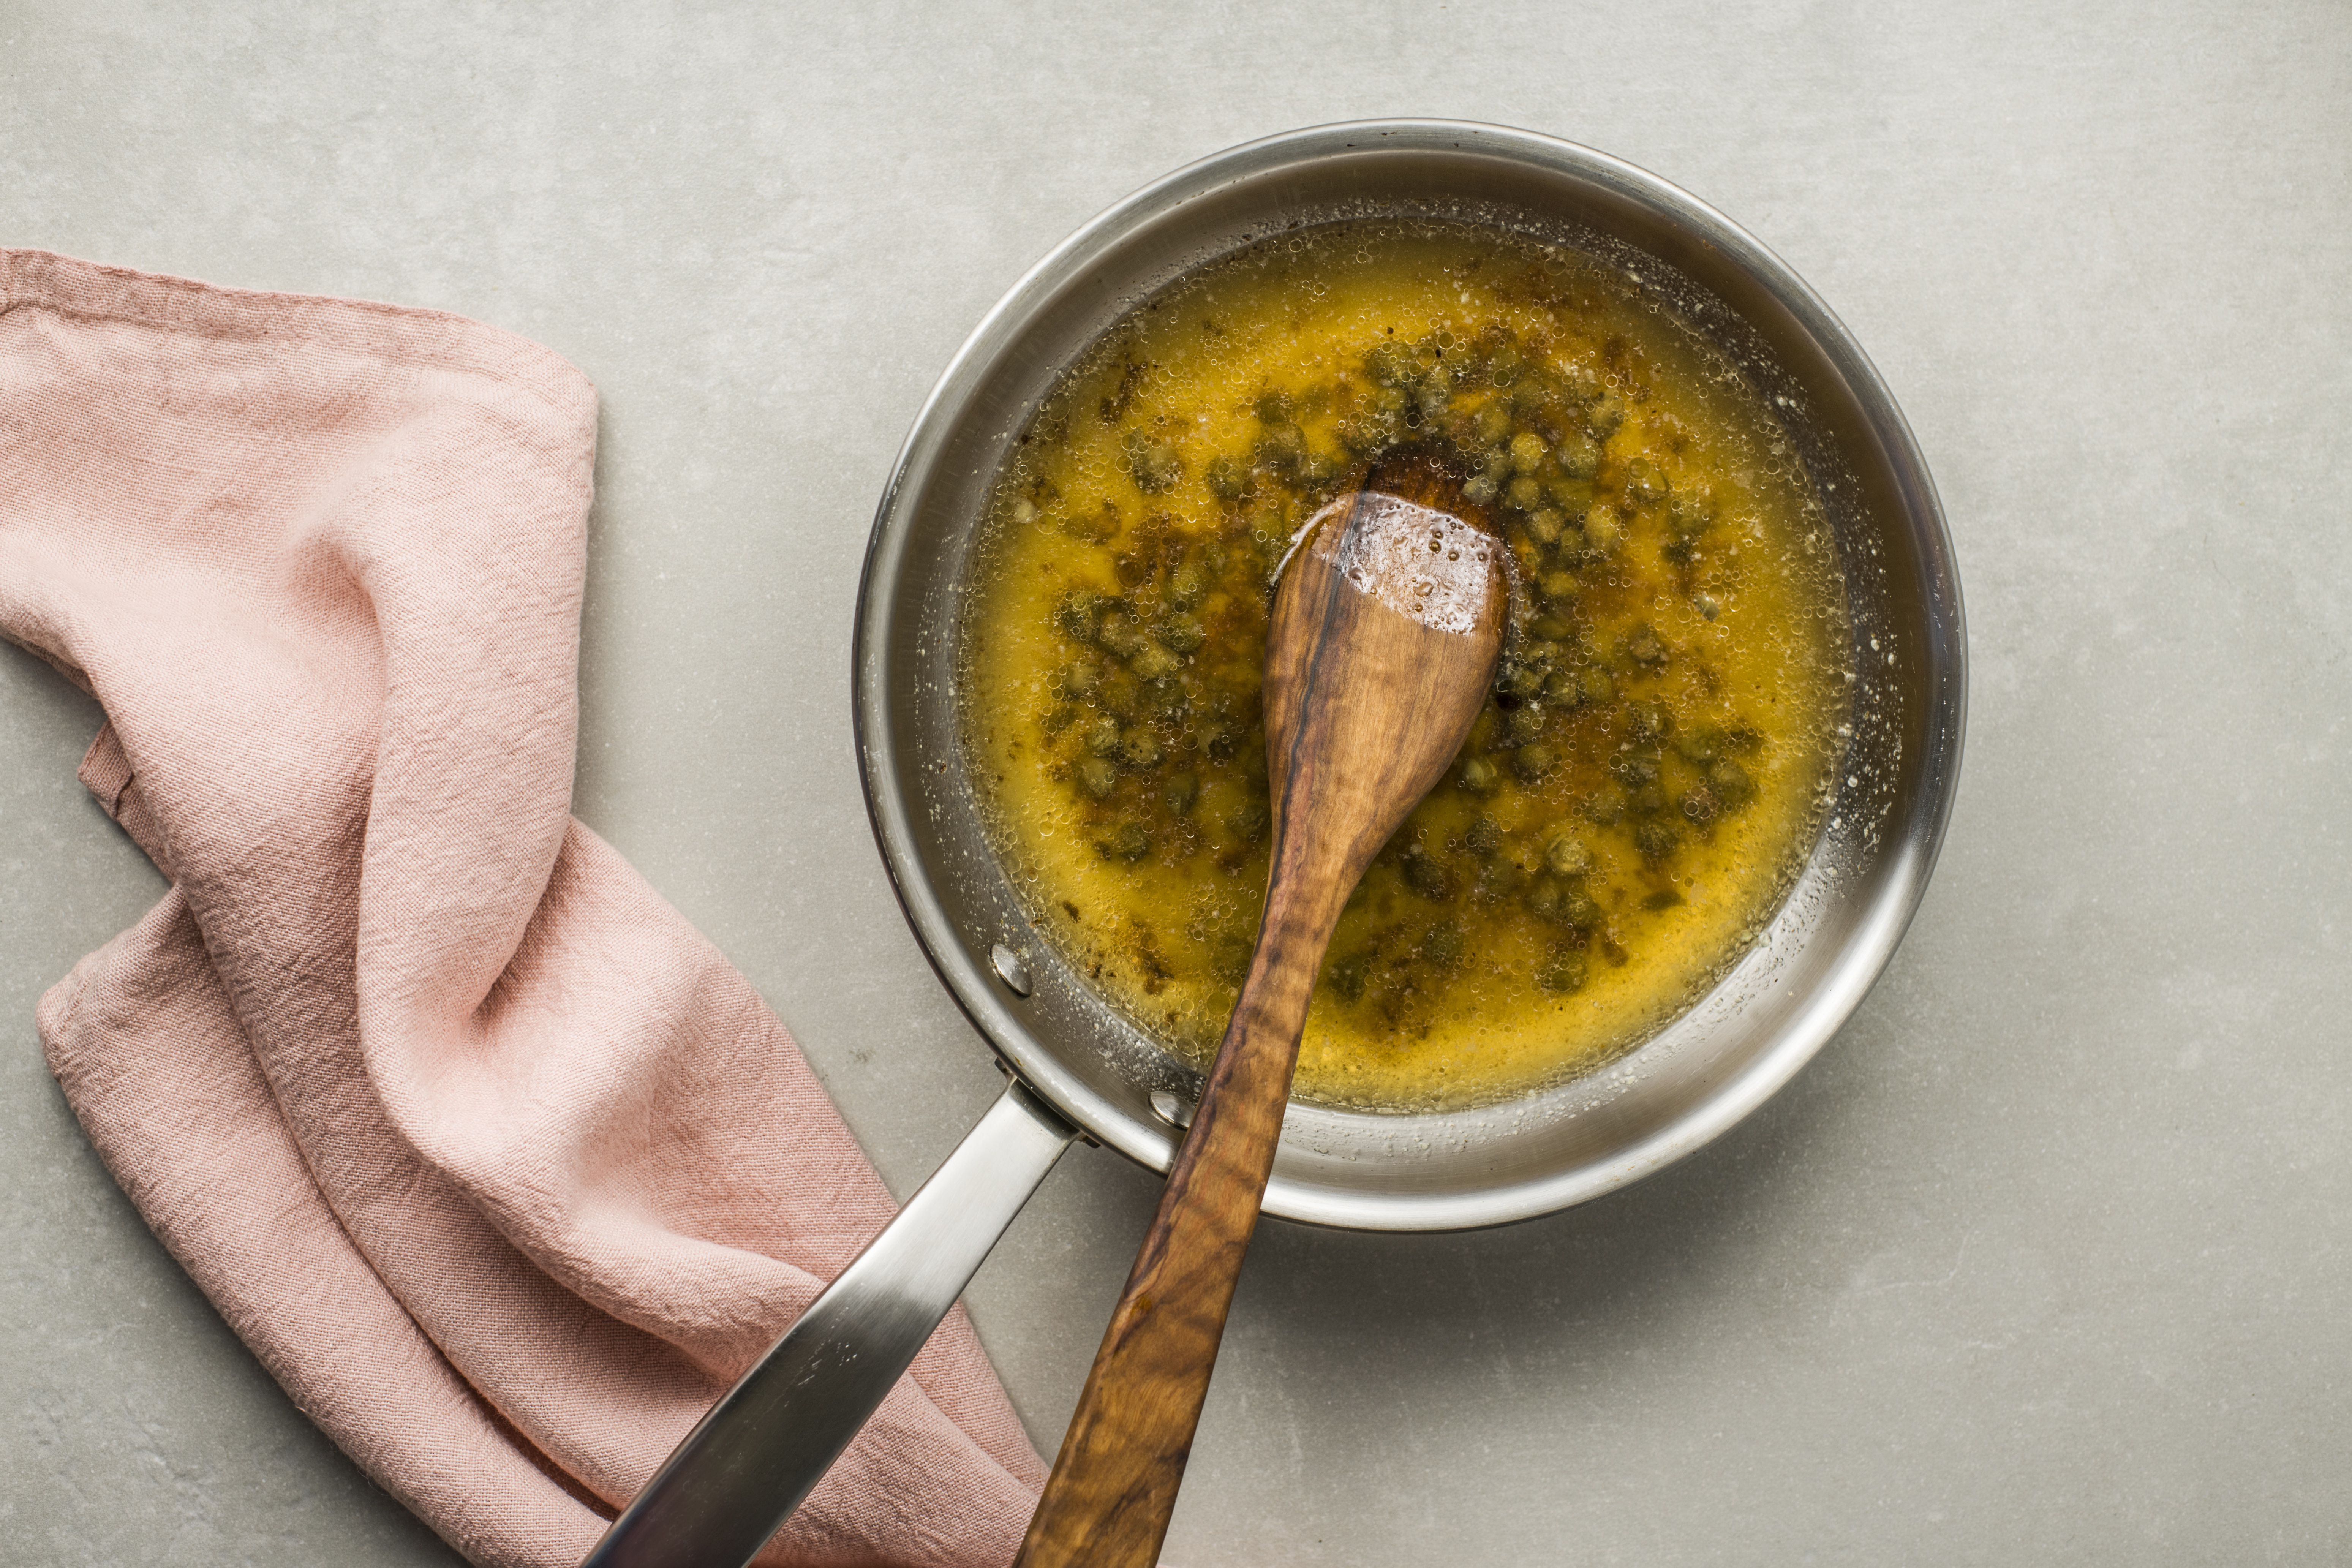 Cook veal piccata sauce and scrape the bottom of the pan